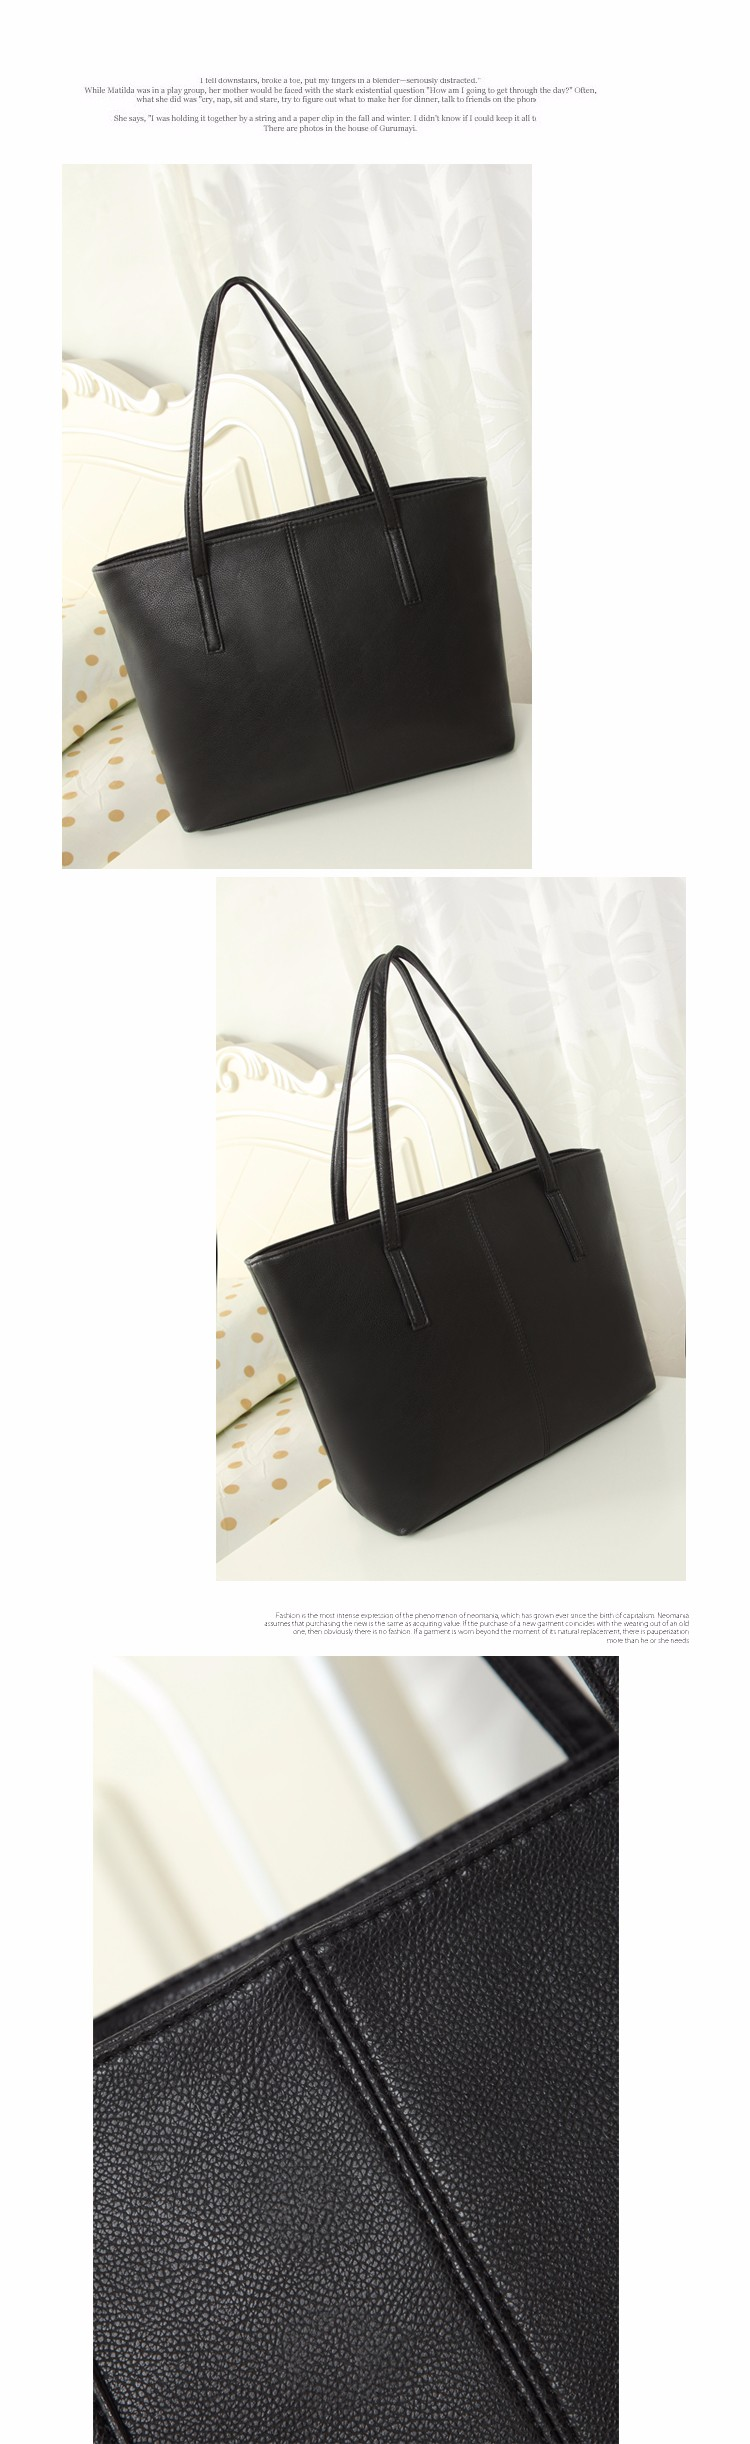 Casual Black Tote Bag Fashion PU Large Bag Women Stylish Simple Shoulder Bag Ladies Trendy Succinct Shopping Bag Handbag